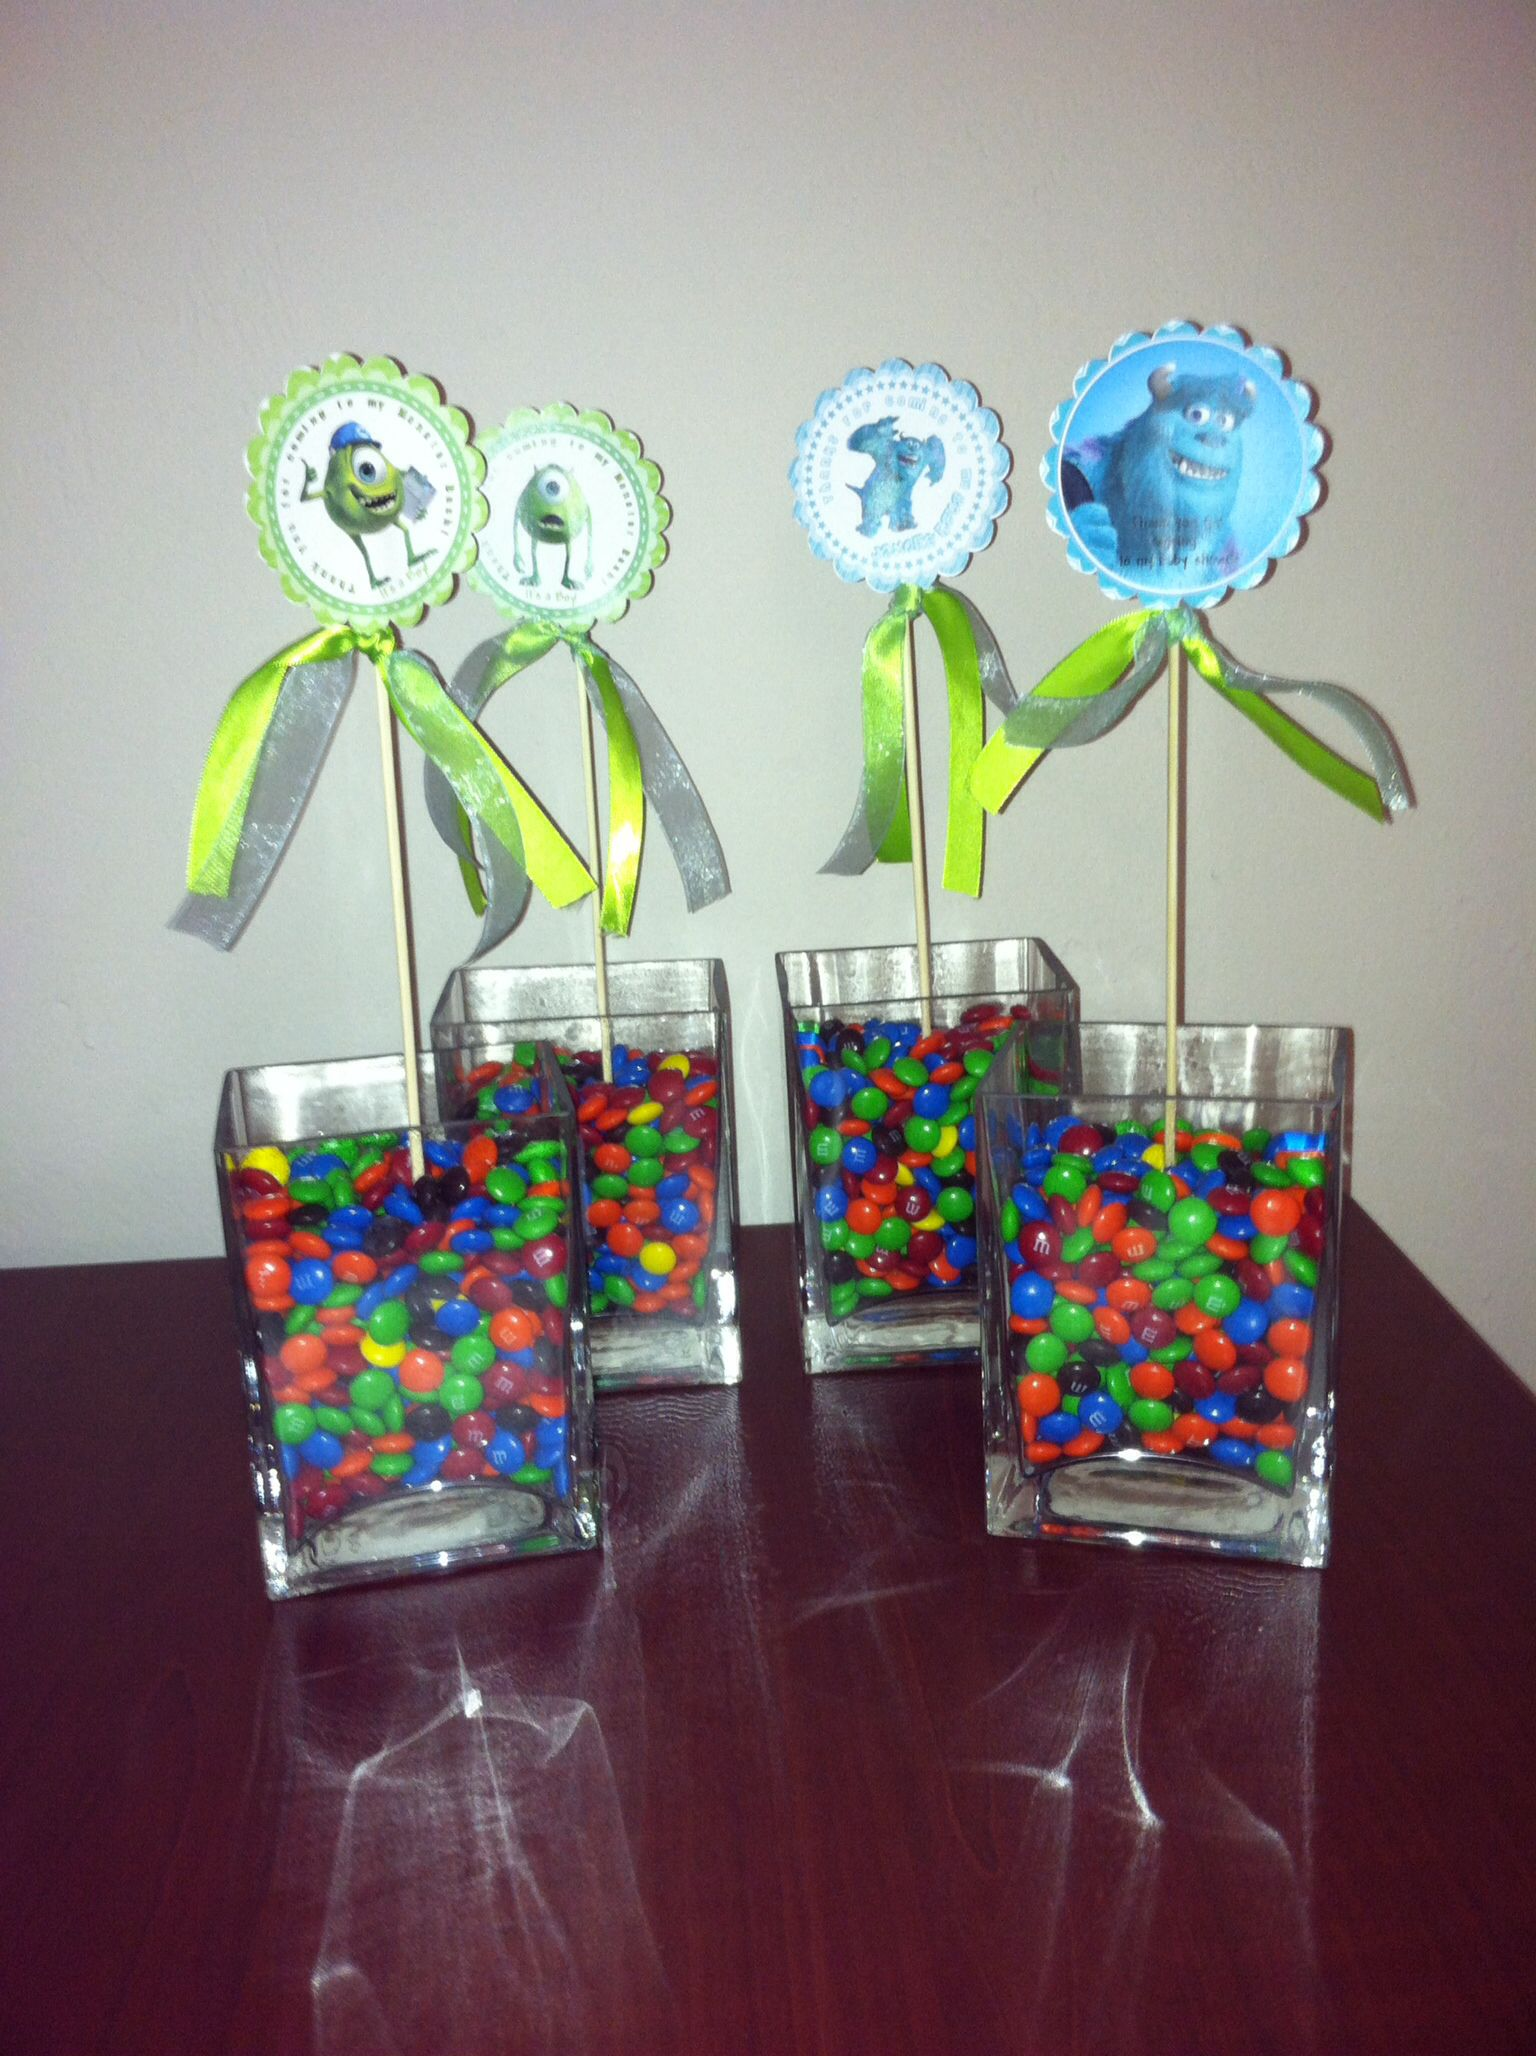 Monsters Inc Baby Shower Decorations Part 26 Monsters Inc Party